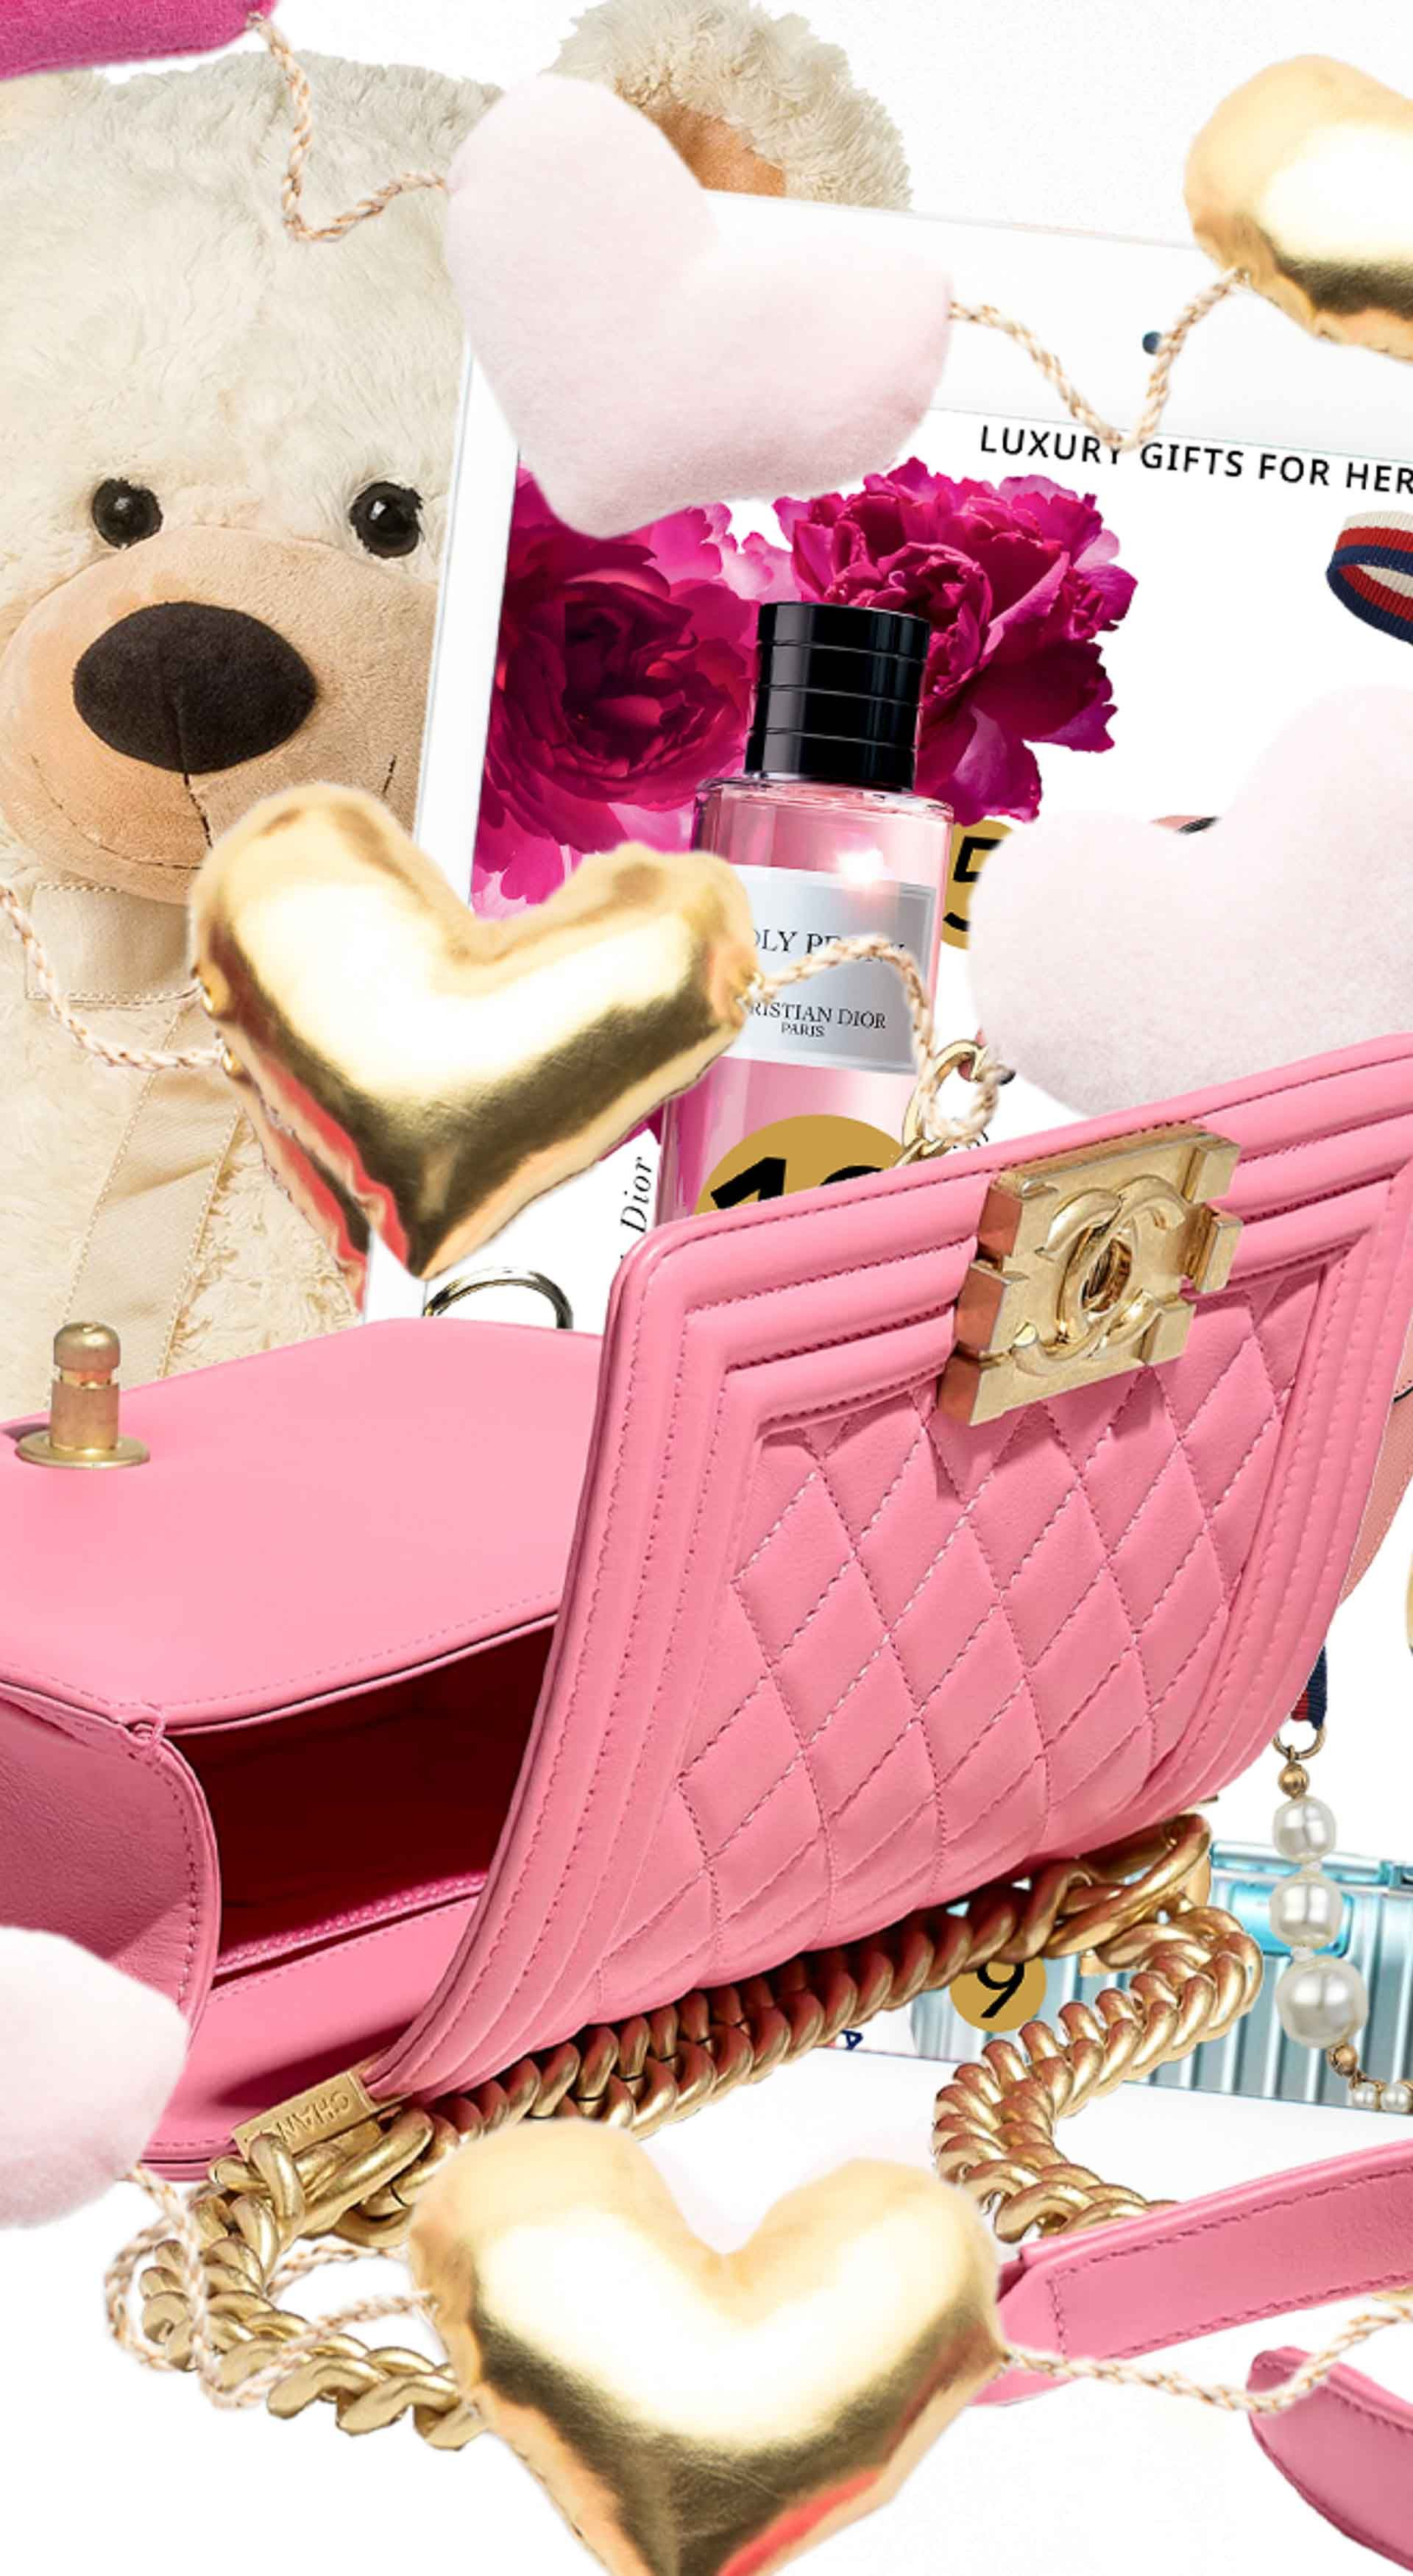 Don't say you forgot about Valentine's Day and came back home with no gift for... The post Forgot about Valentine's Day? Here is how to make up to her appeared first on Brunette from Wall Street.